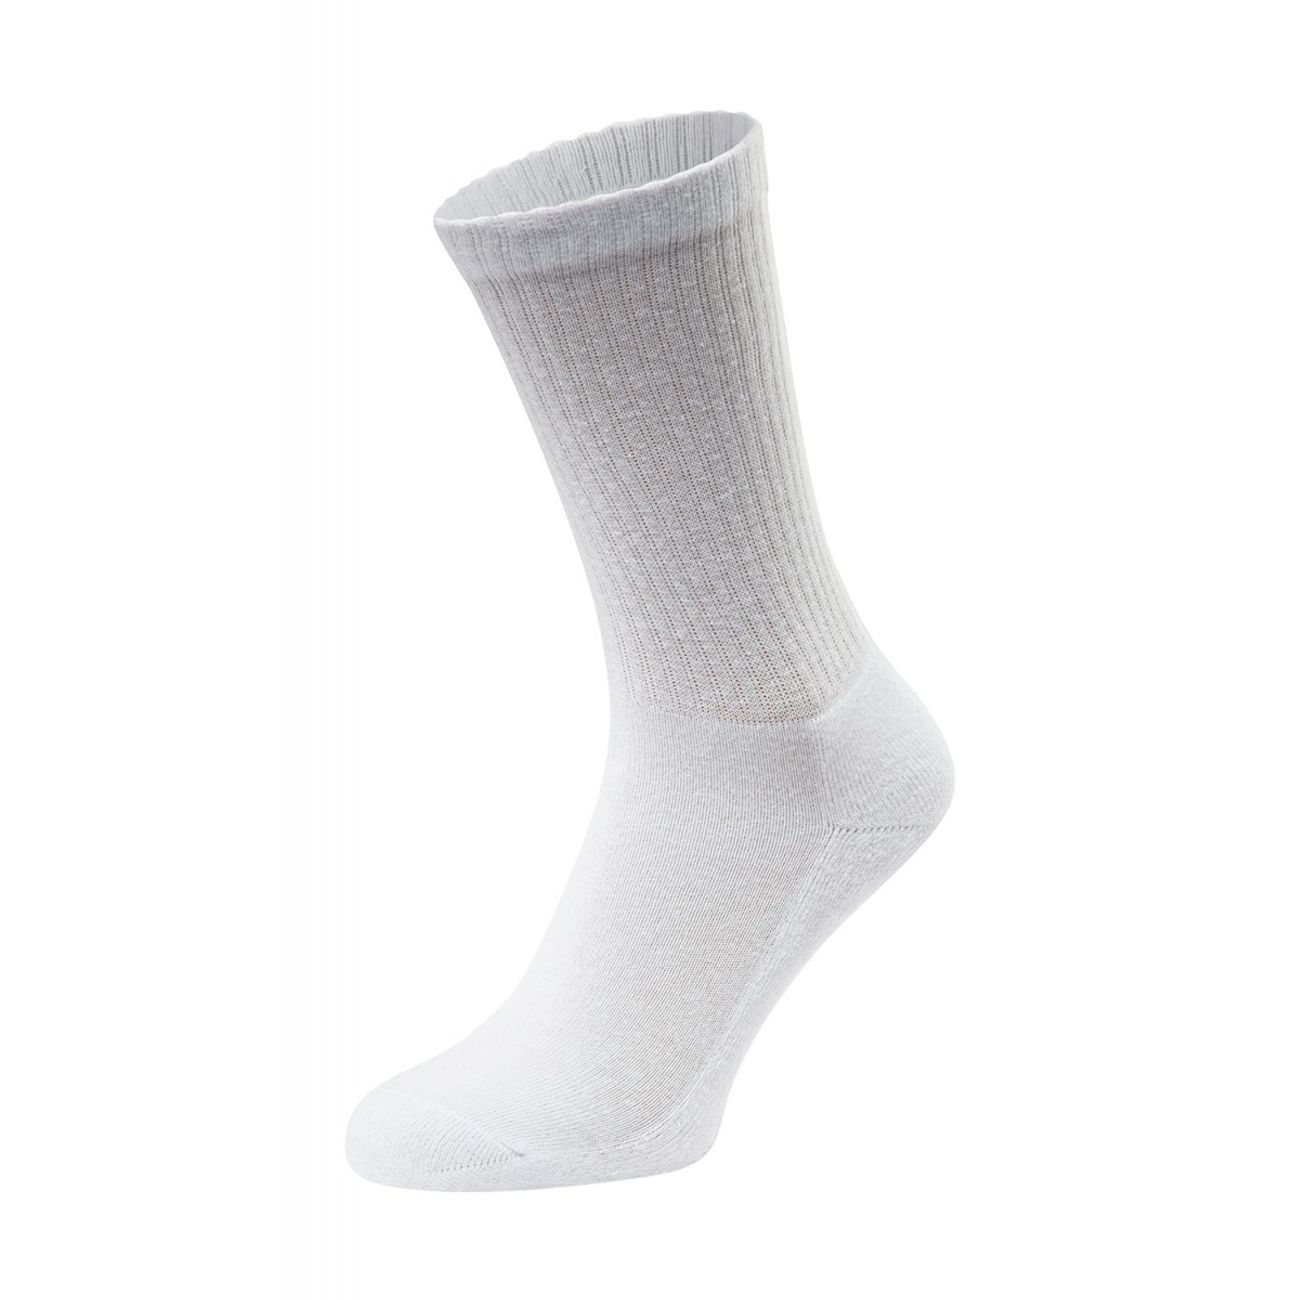 zBlanc 67 Of Paires longues Fruit Pack The Mi Chaussettes 600 3 Loom ModeLifestyle Homme cTlFJK1